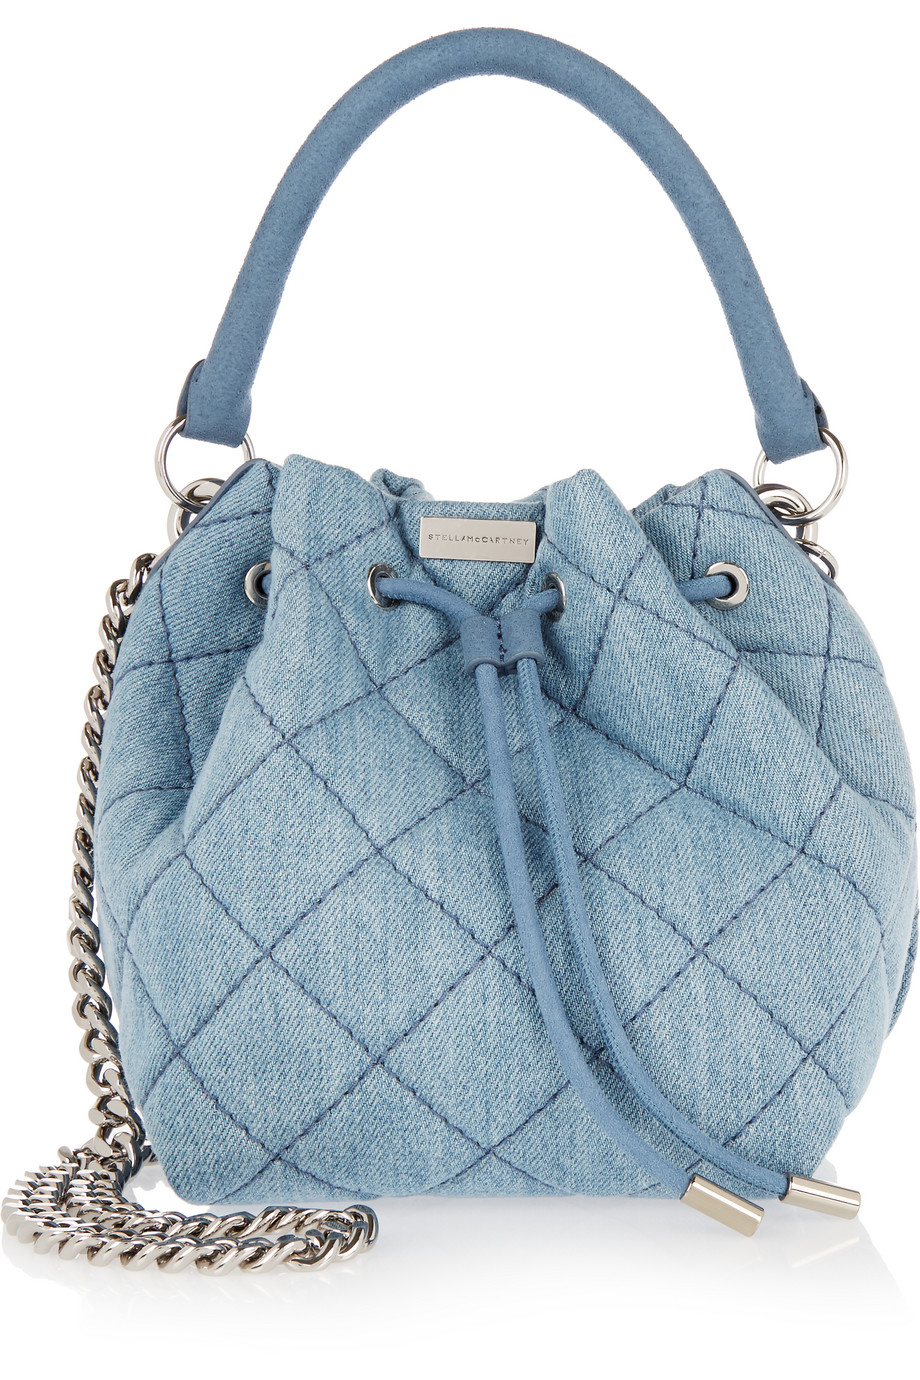 Stella Mccartney Beckett Small Quilted Denim Bucket Bag, Blue, Women's, Size: One Size